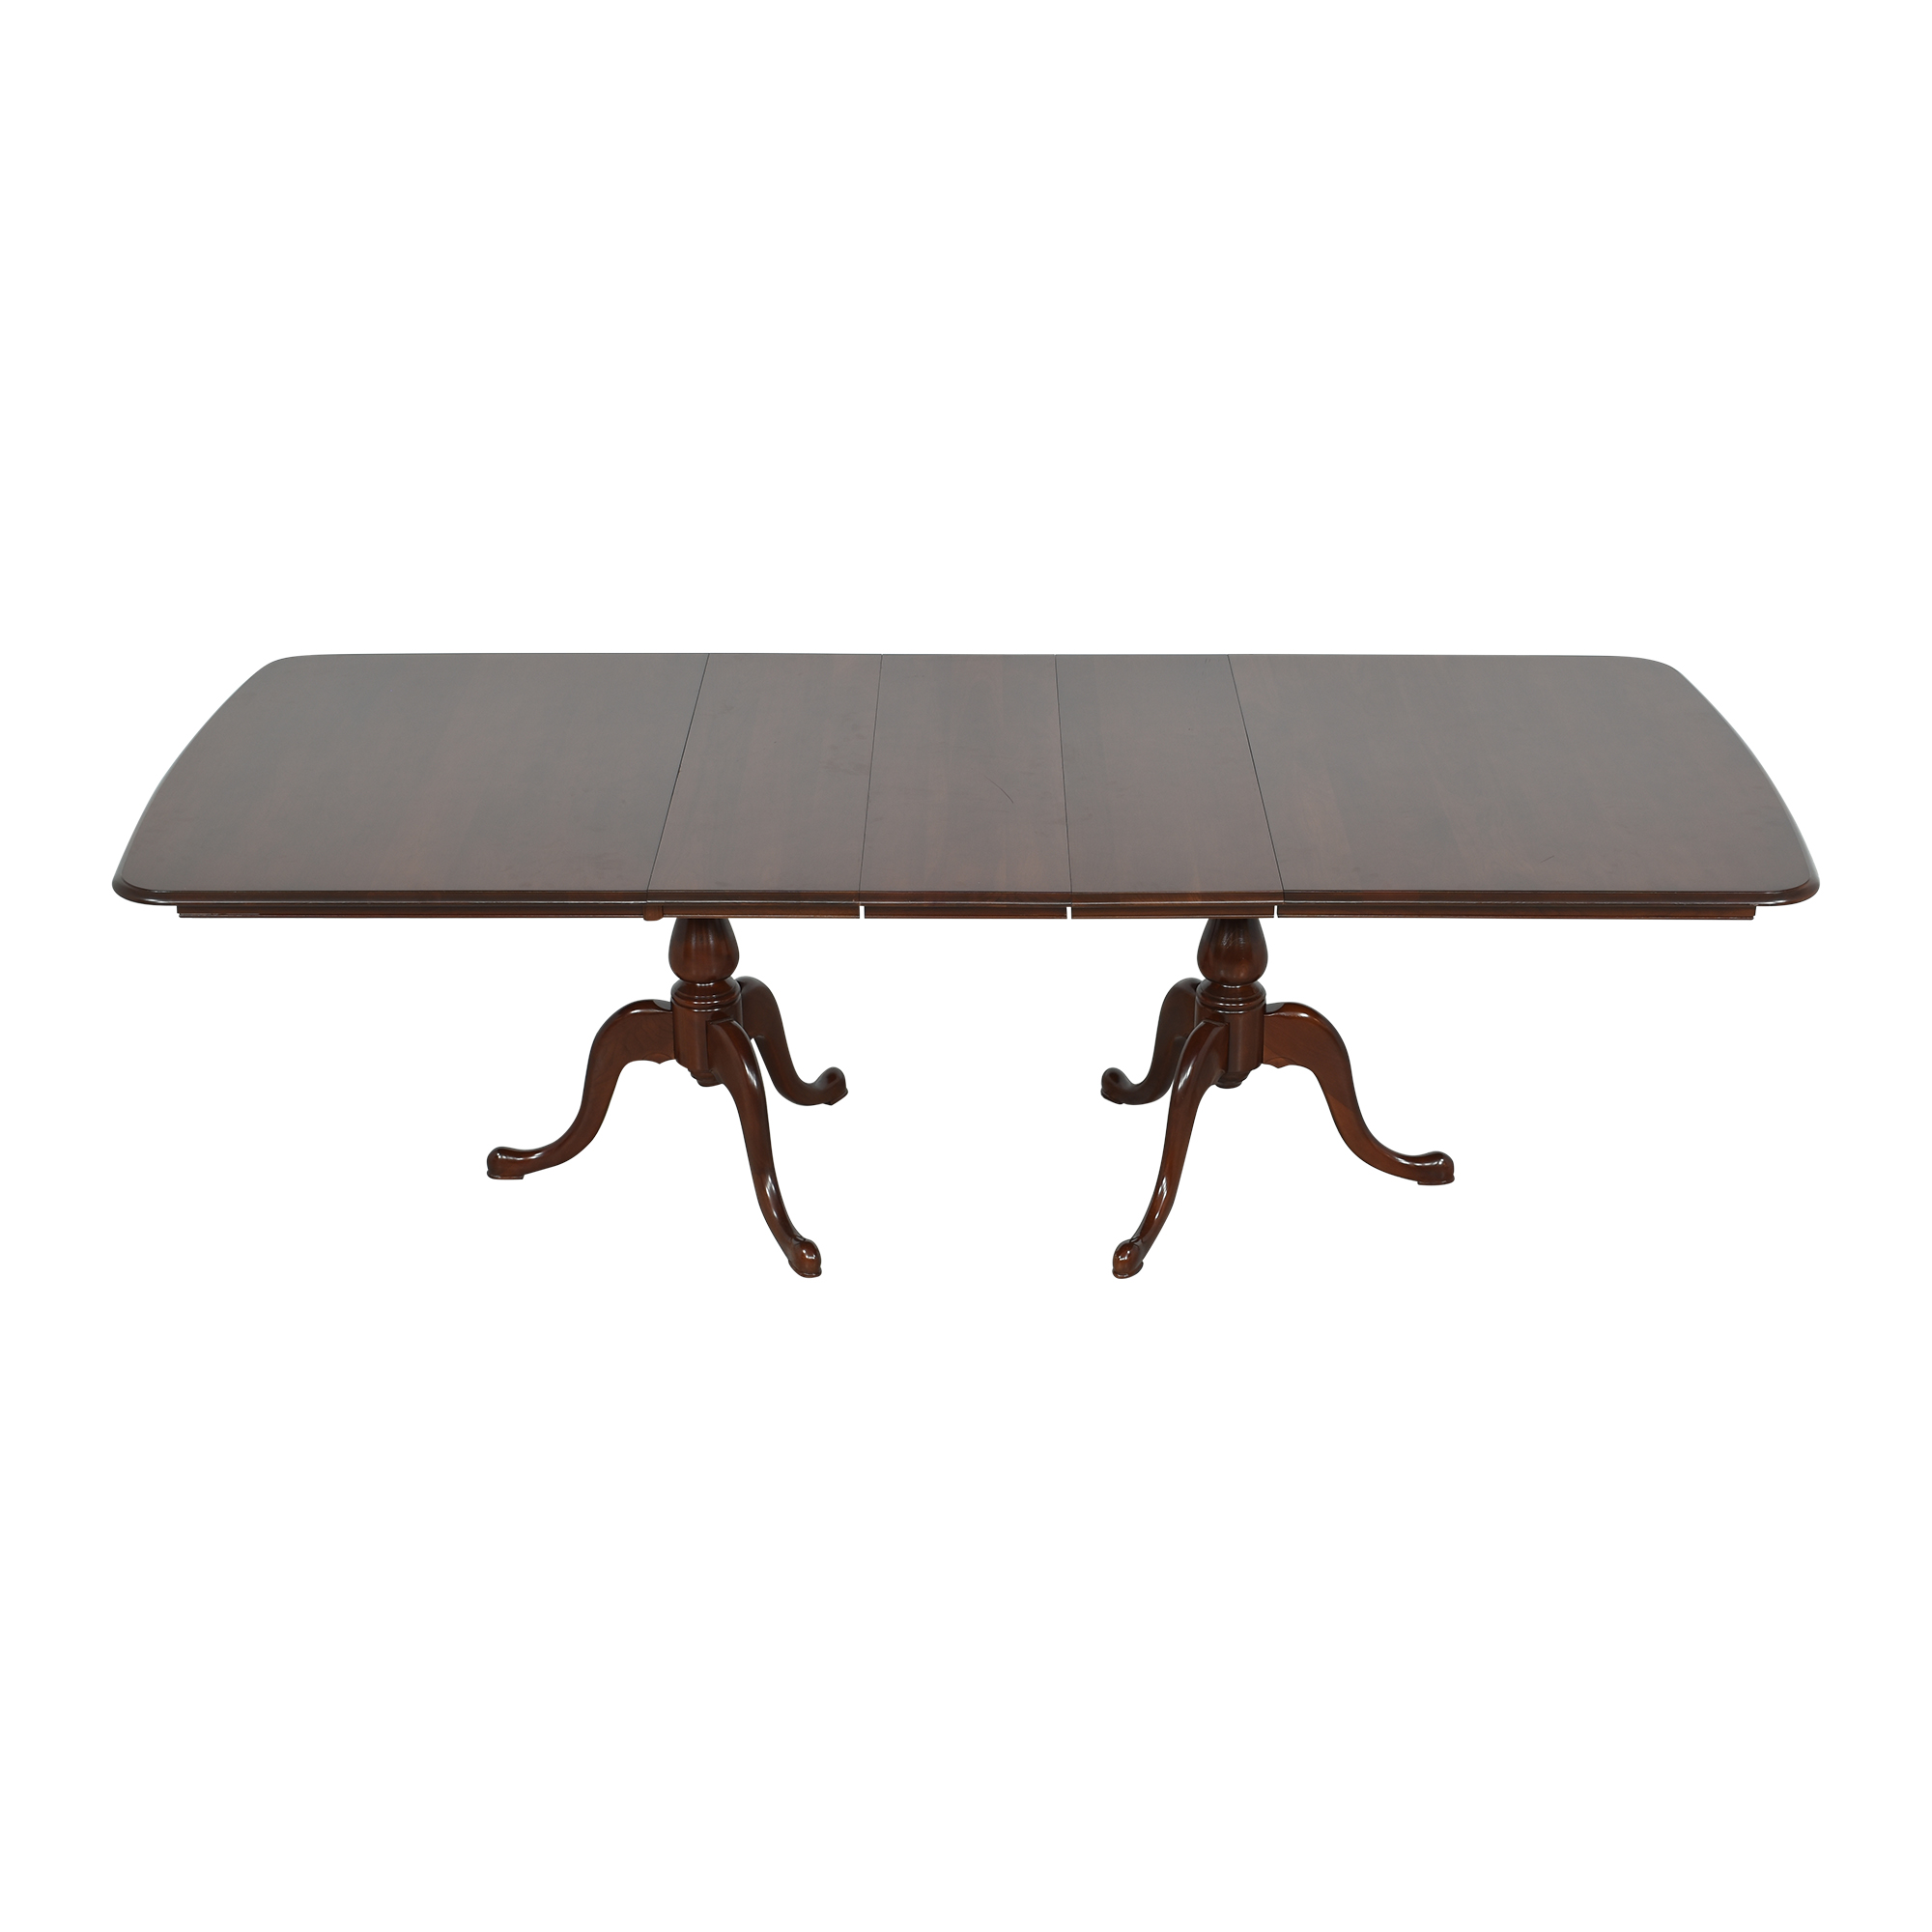 The Colonial Furniture Company The Colonial Furniture Company Extendable Dining Table second hand